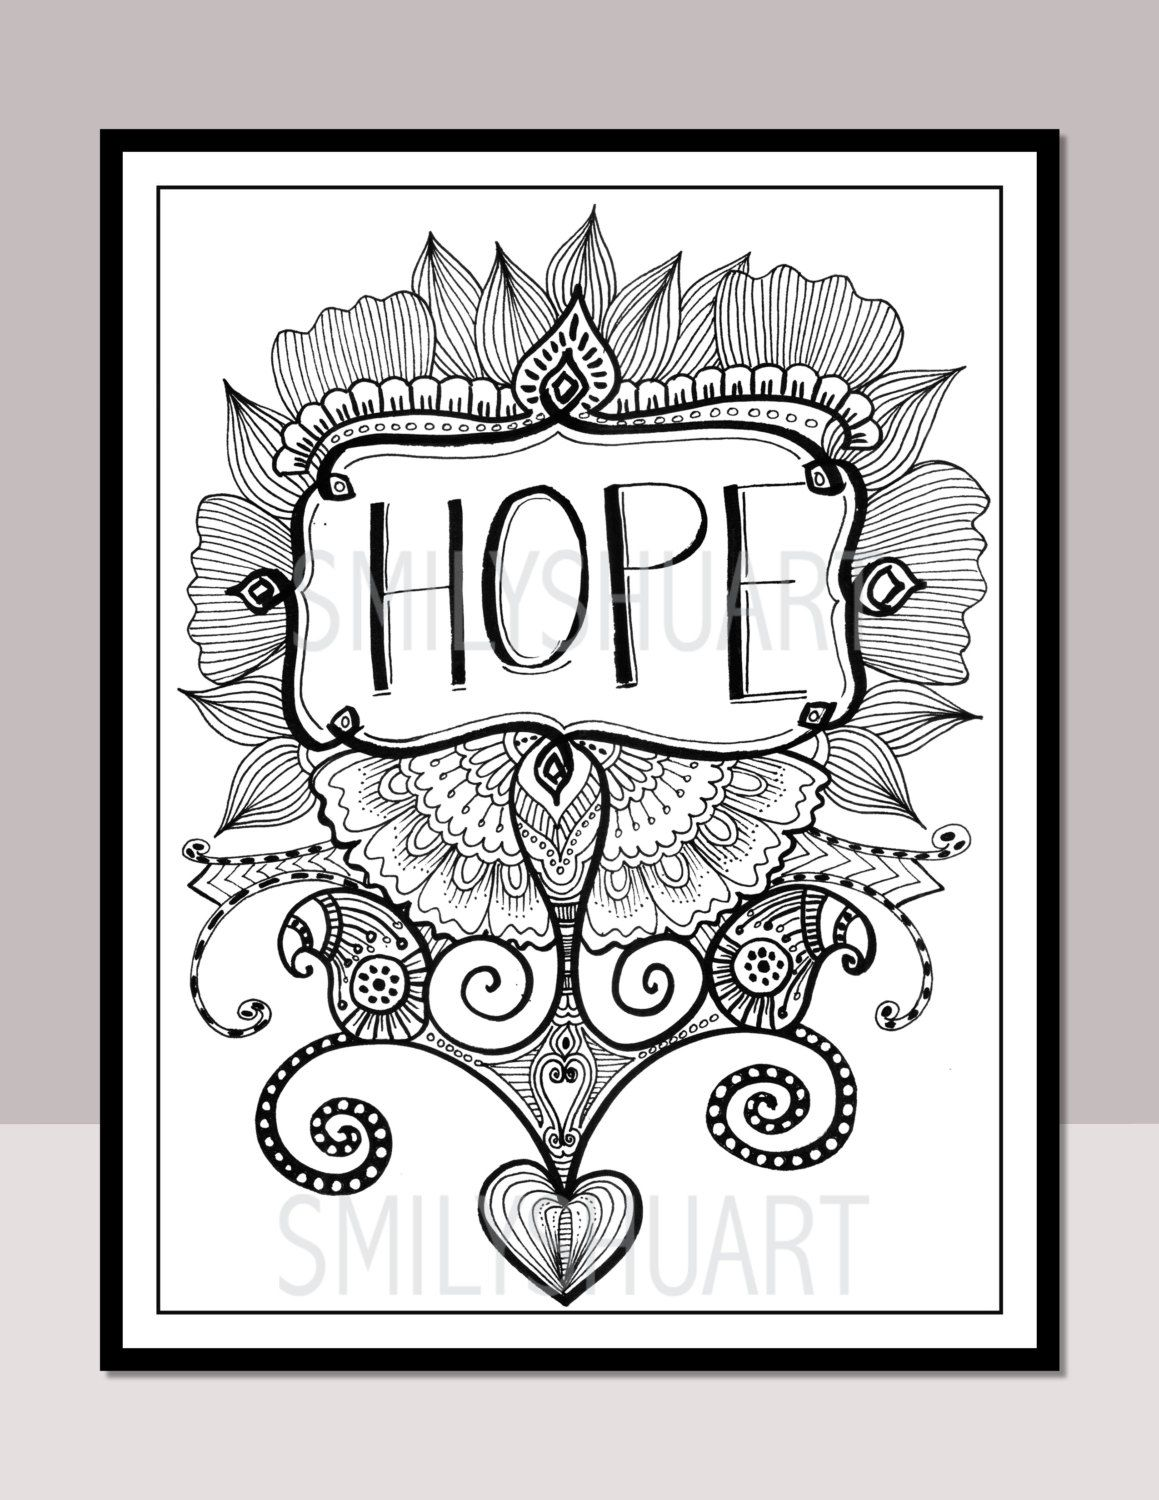 hope printable motivational quotes zentangle adult coloring pages cards mindfulness coloring